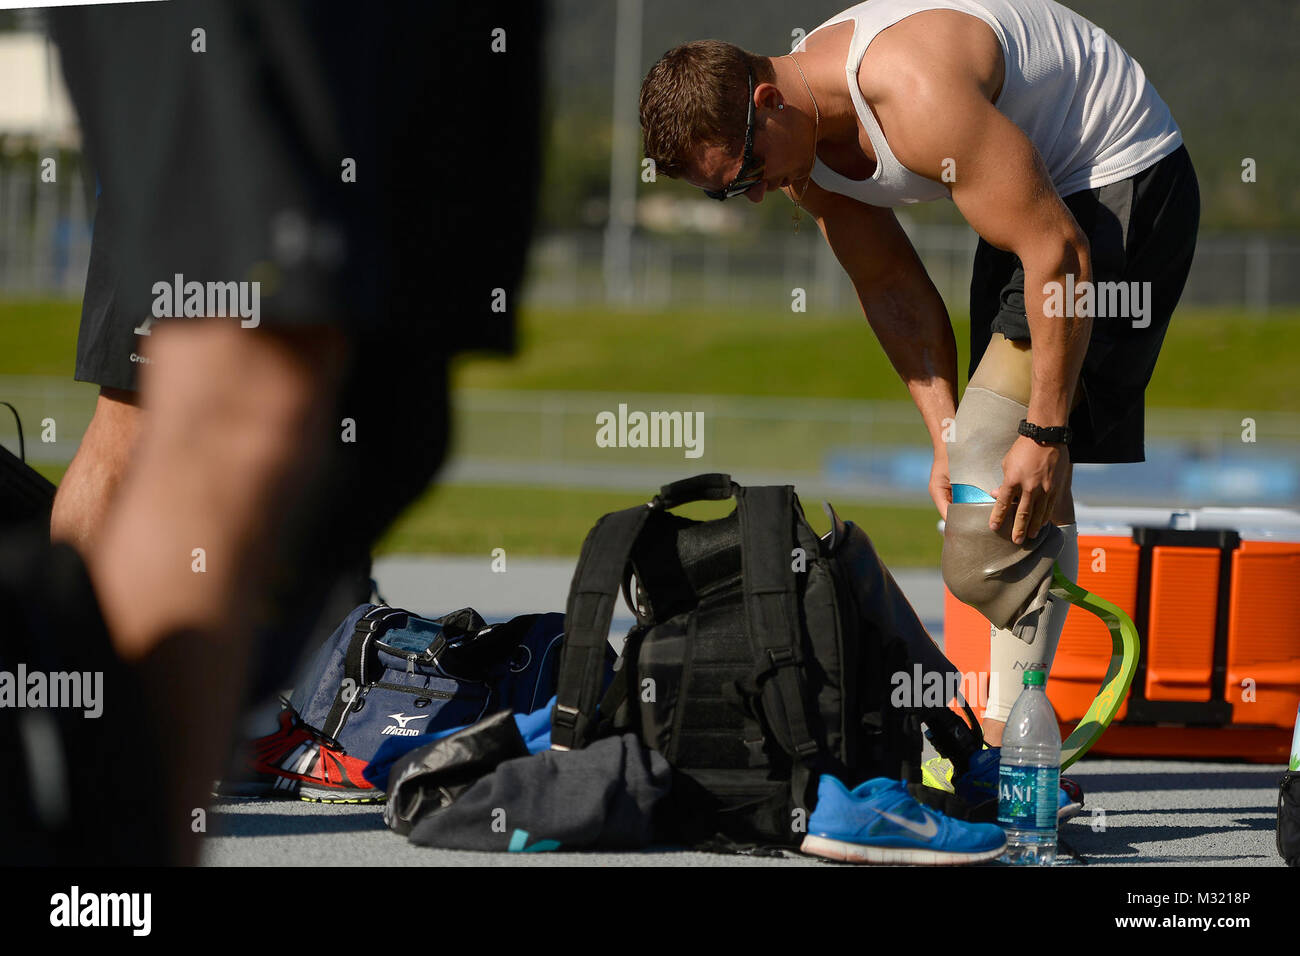 Gideon Connelly prepares for track and filed practice Aug. 3 2014 at the Air Force Academy, Colo. The Wounded Warrior - Stock Image